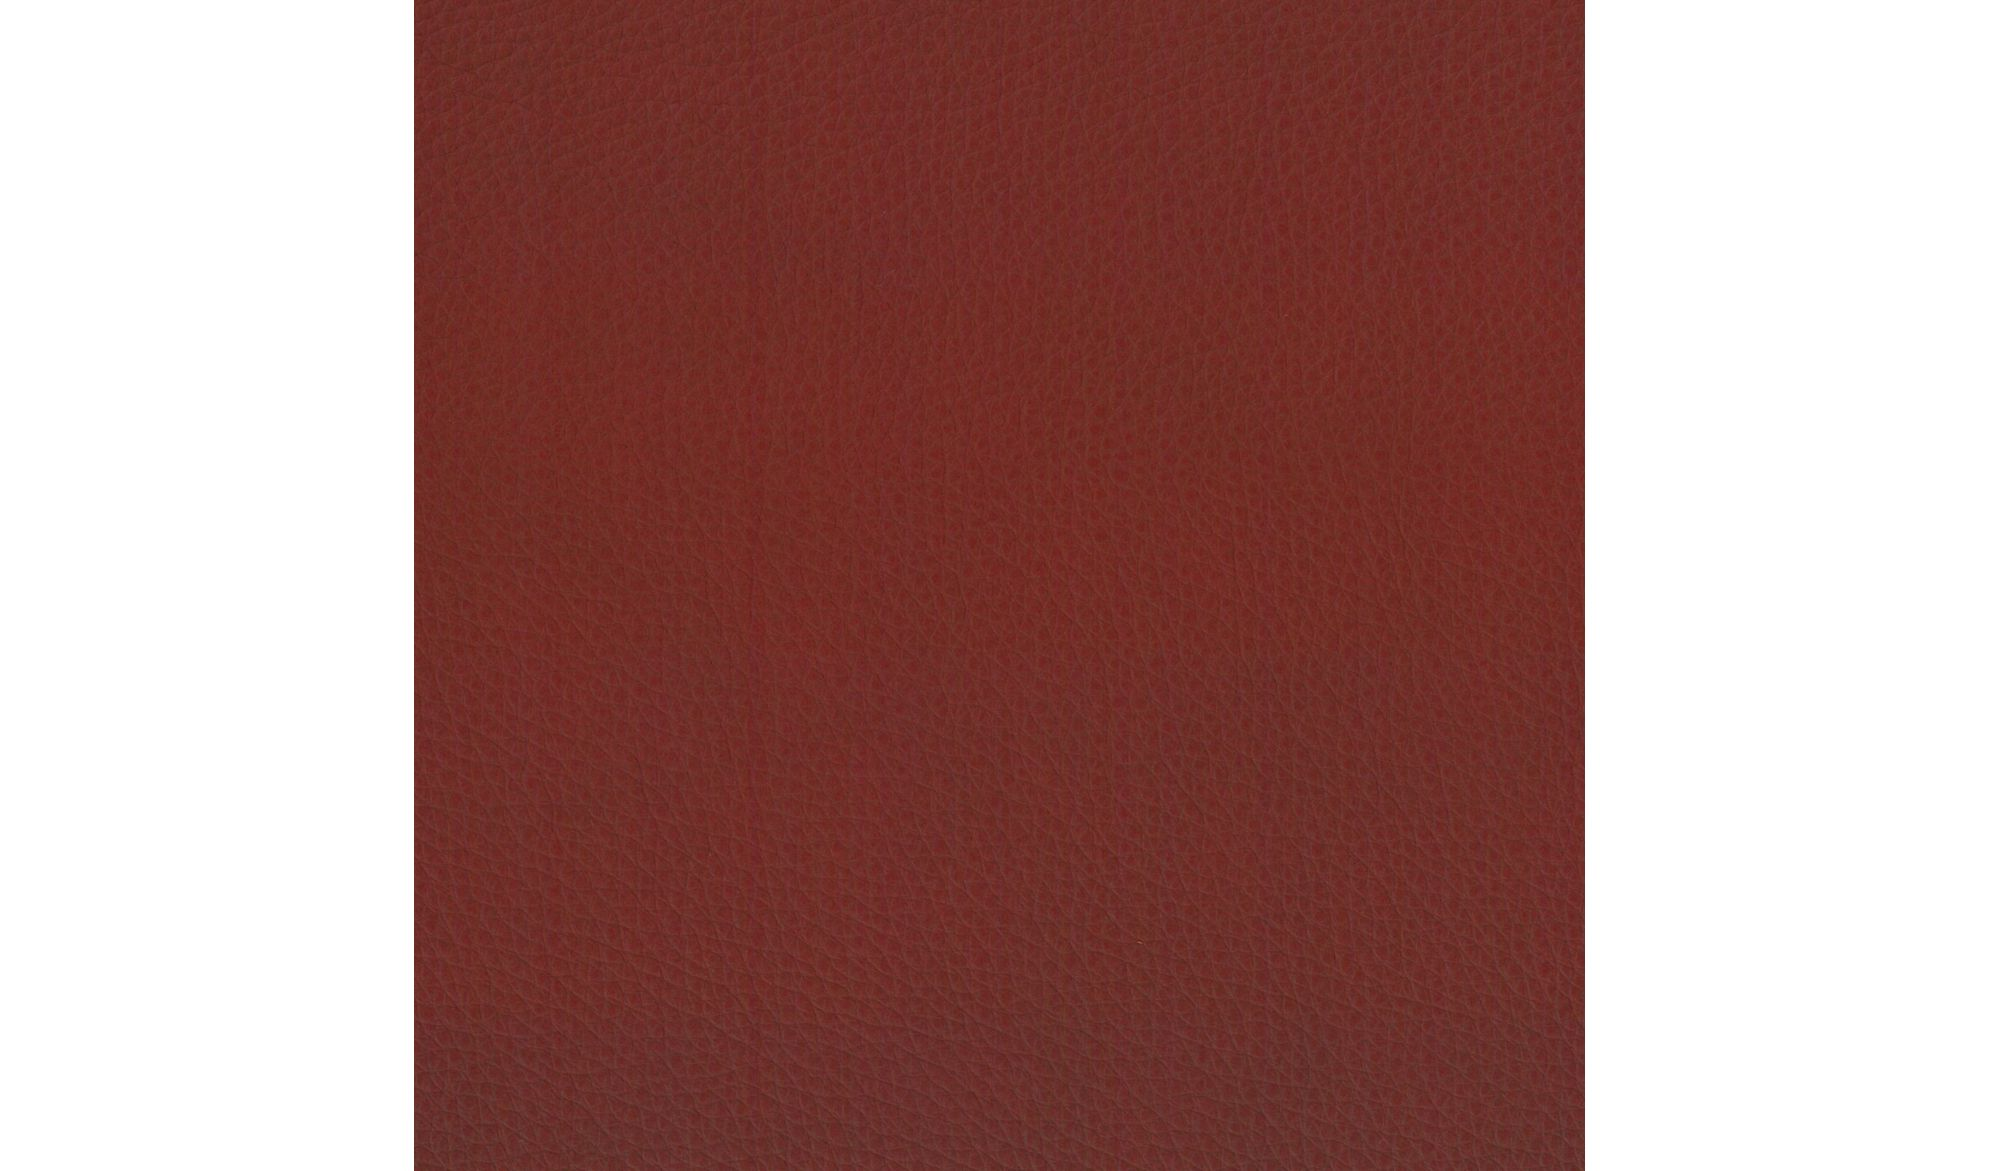 SKÓRA ALPIN Raspberry 27092 - Leather alt_skory_kolor_raspberry 27092 Upholstery IMO Plain - Colour